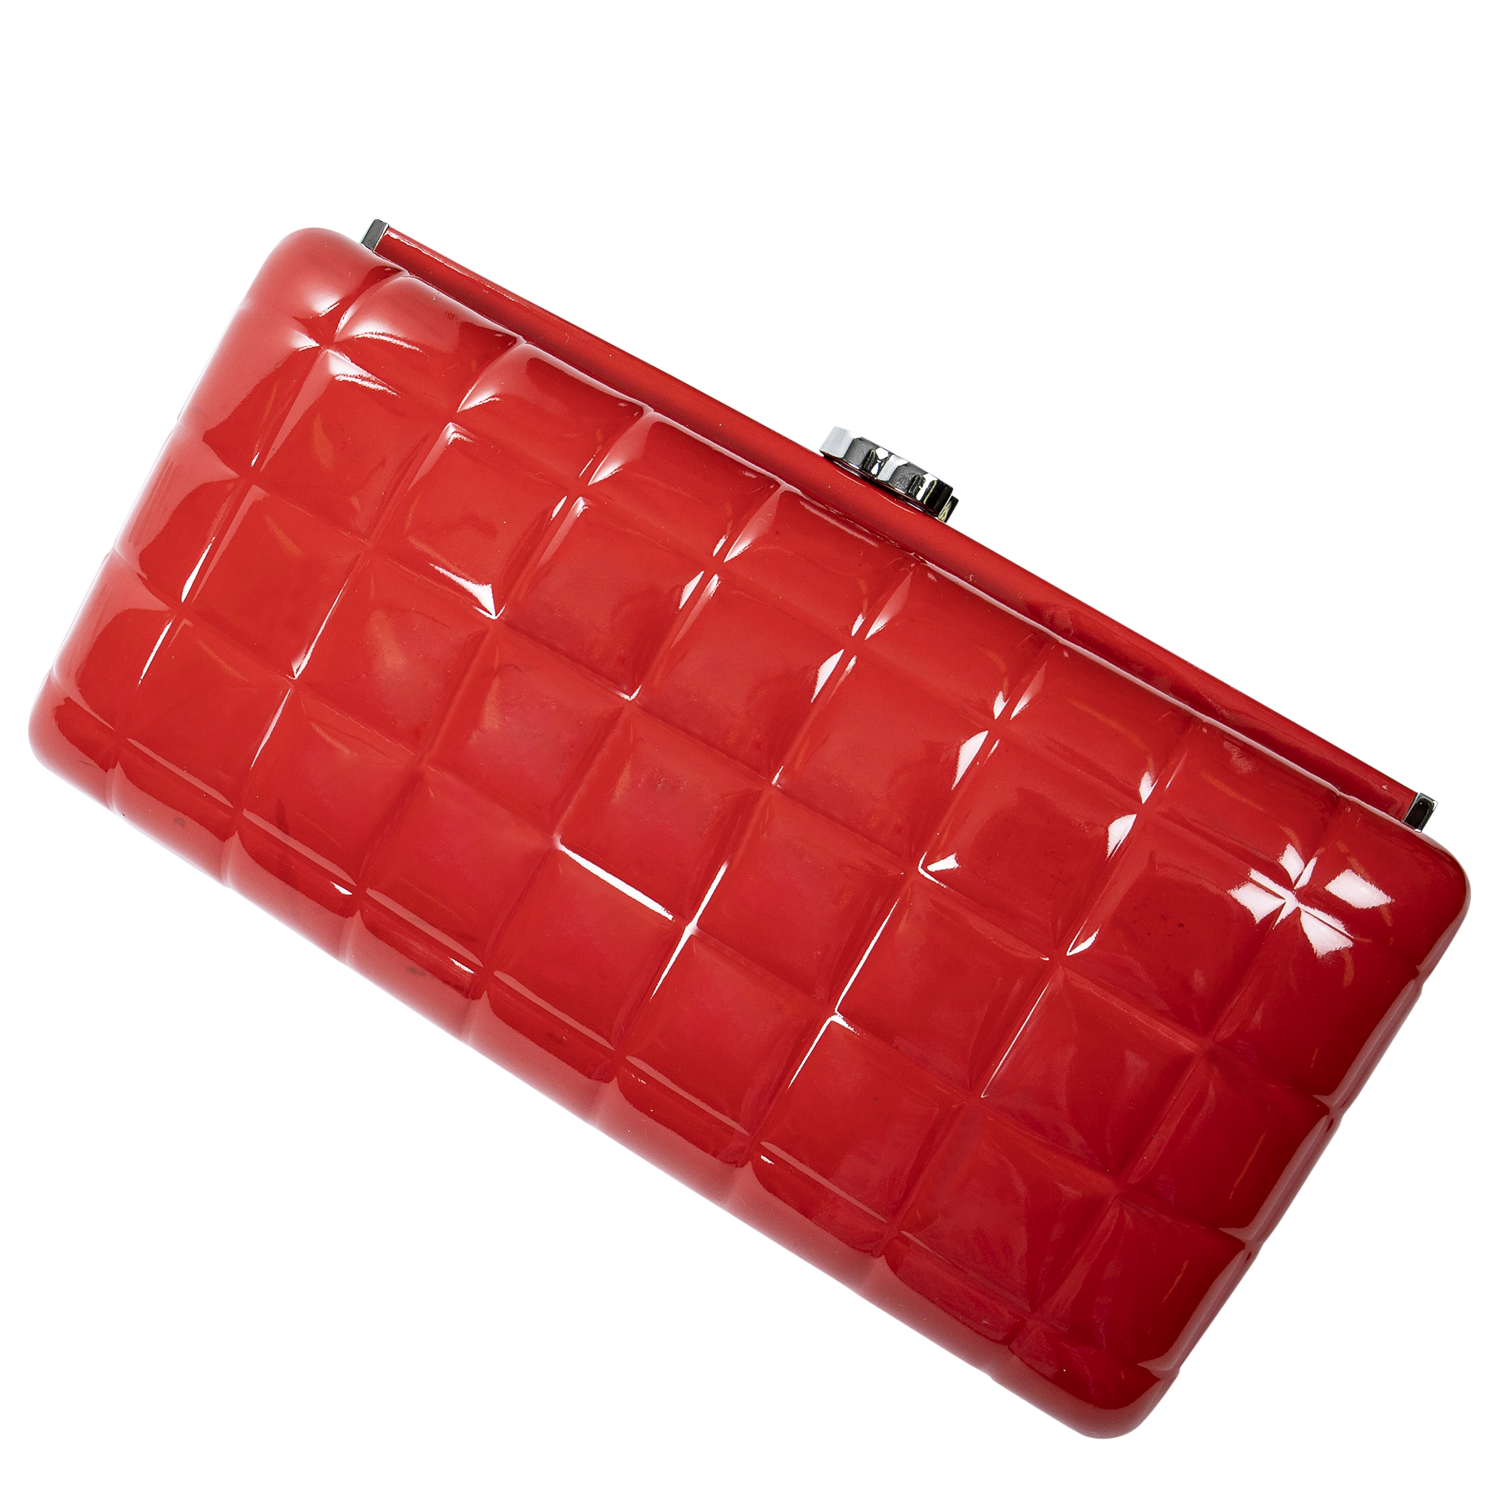 Chanel Rare Red CC Patent Leather Chocolate Bar Clutch